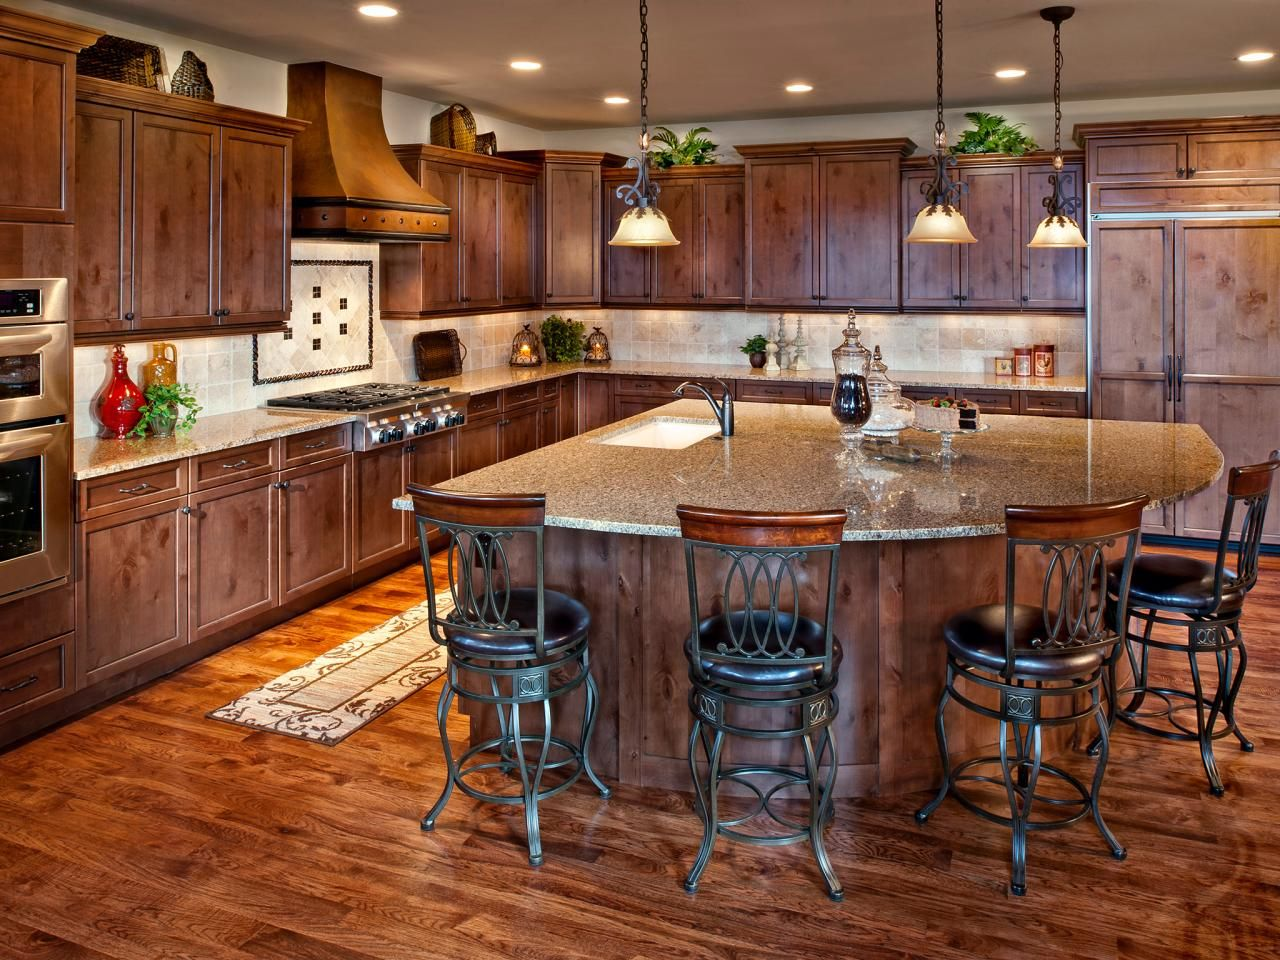 Traditional Kitchen Styles Pictures Of Beautiful Kitchen Designs & Layouts From  Hgtv